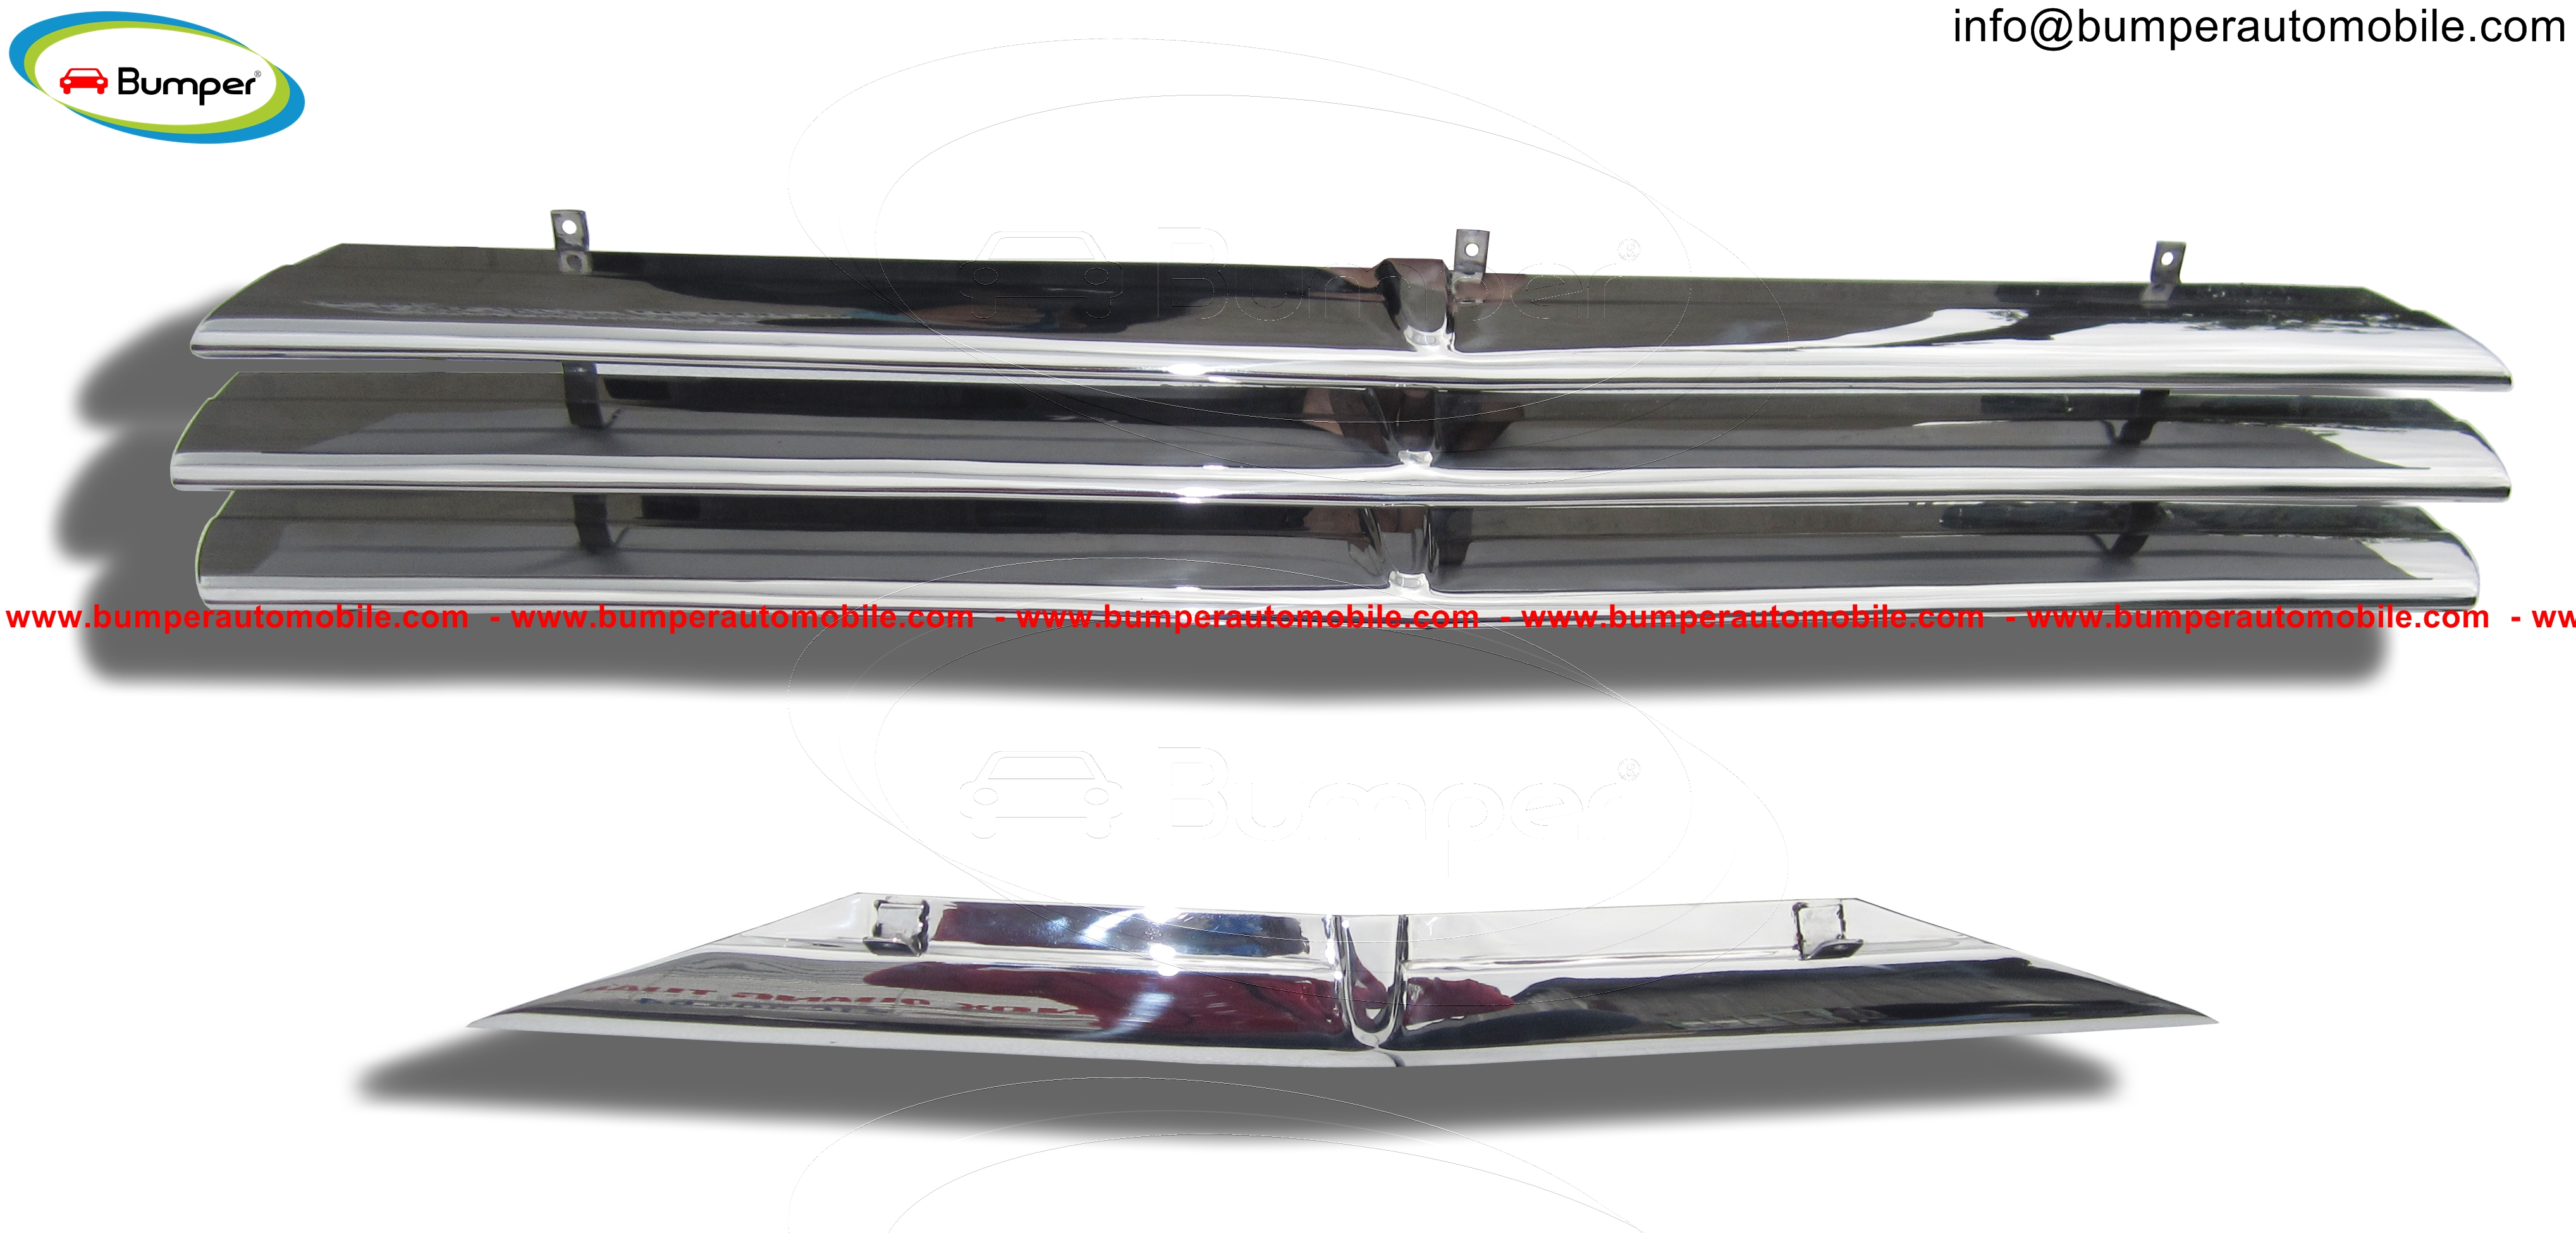 Saab 92 year (1949-1956) and Saab 92B year (1952-1956) grille stainless steel